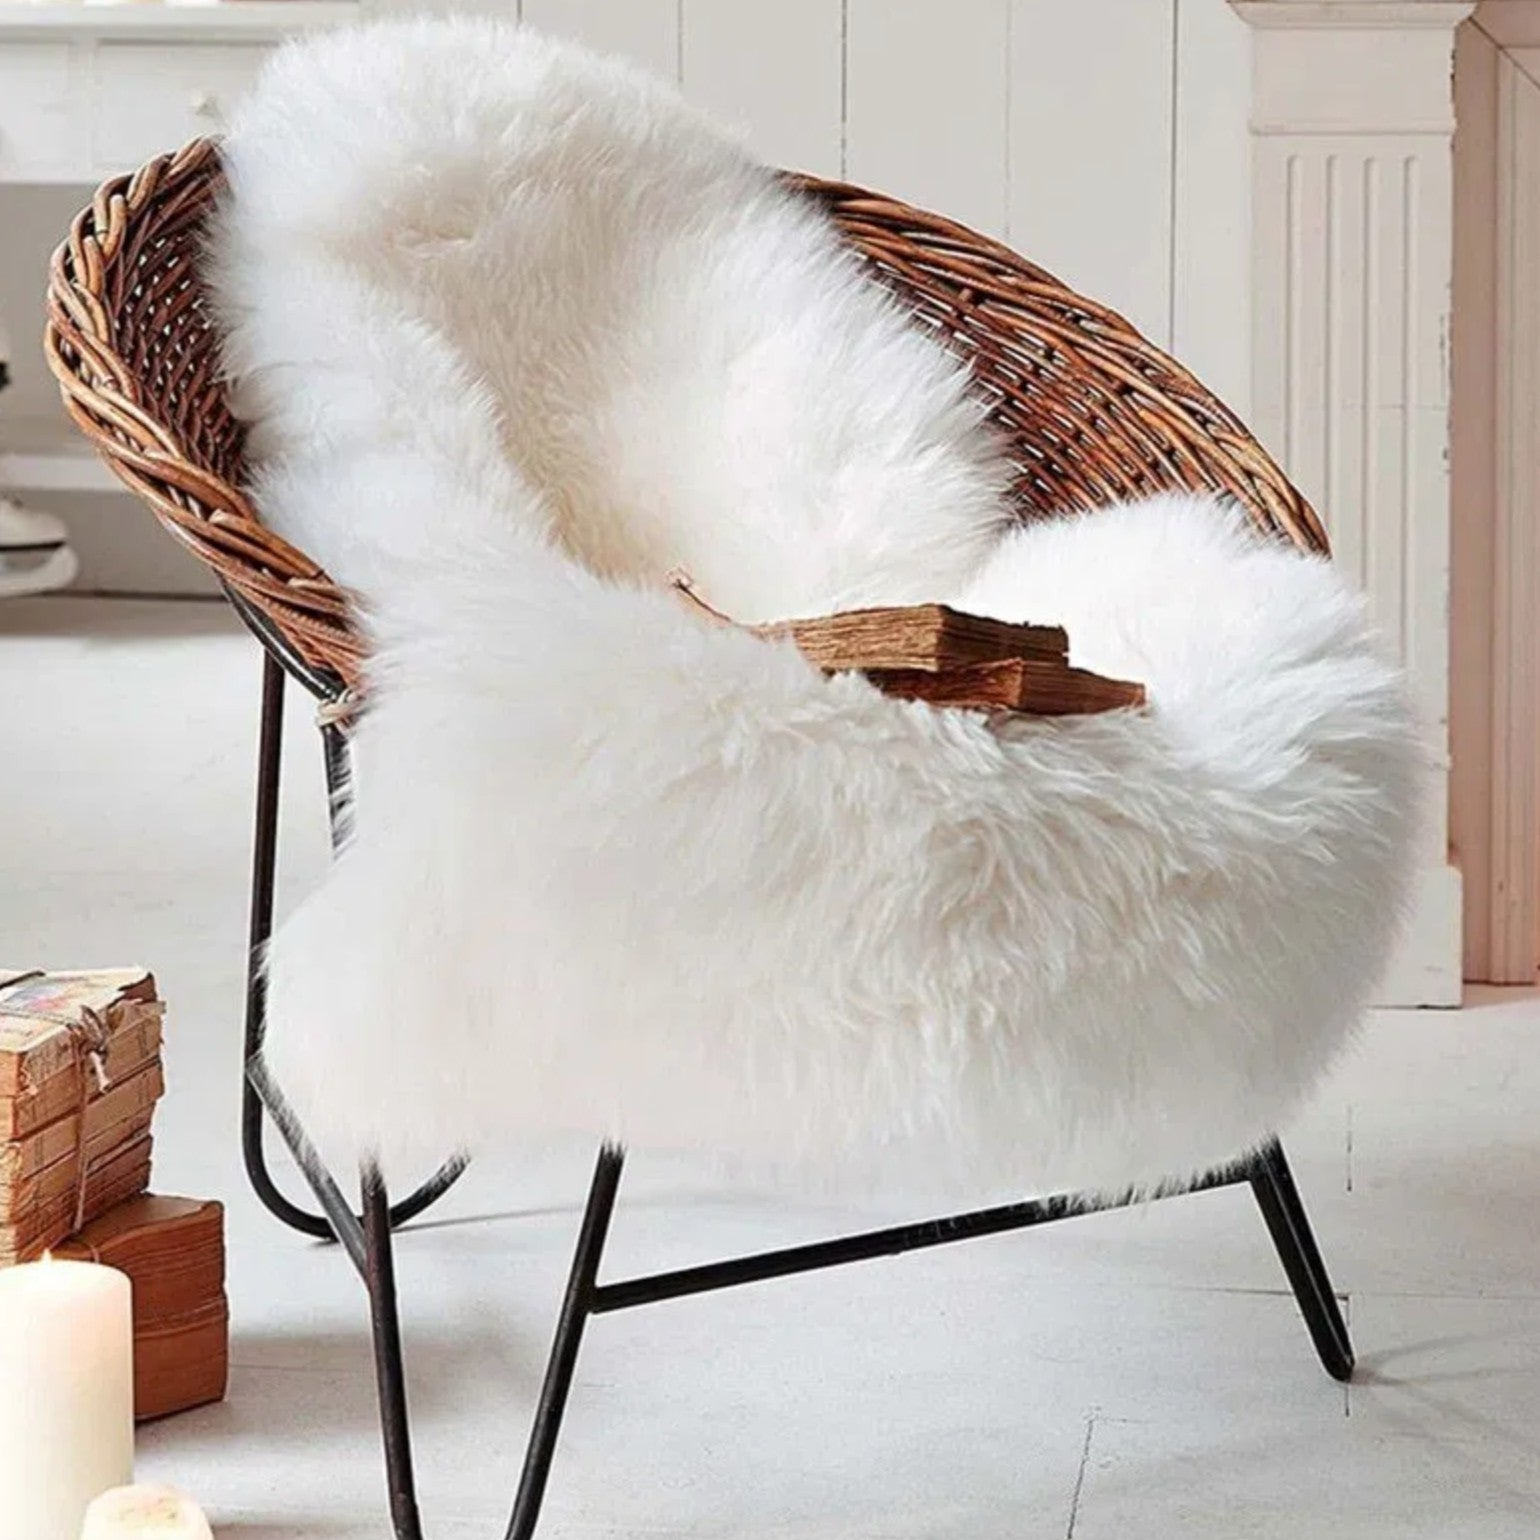 Shop Faux Sheepskin Rug from (Vendor not listed) on Openhaus